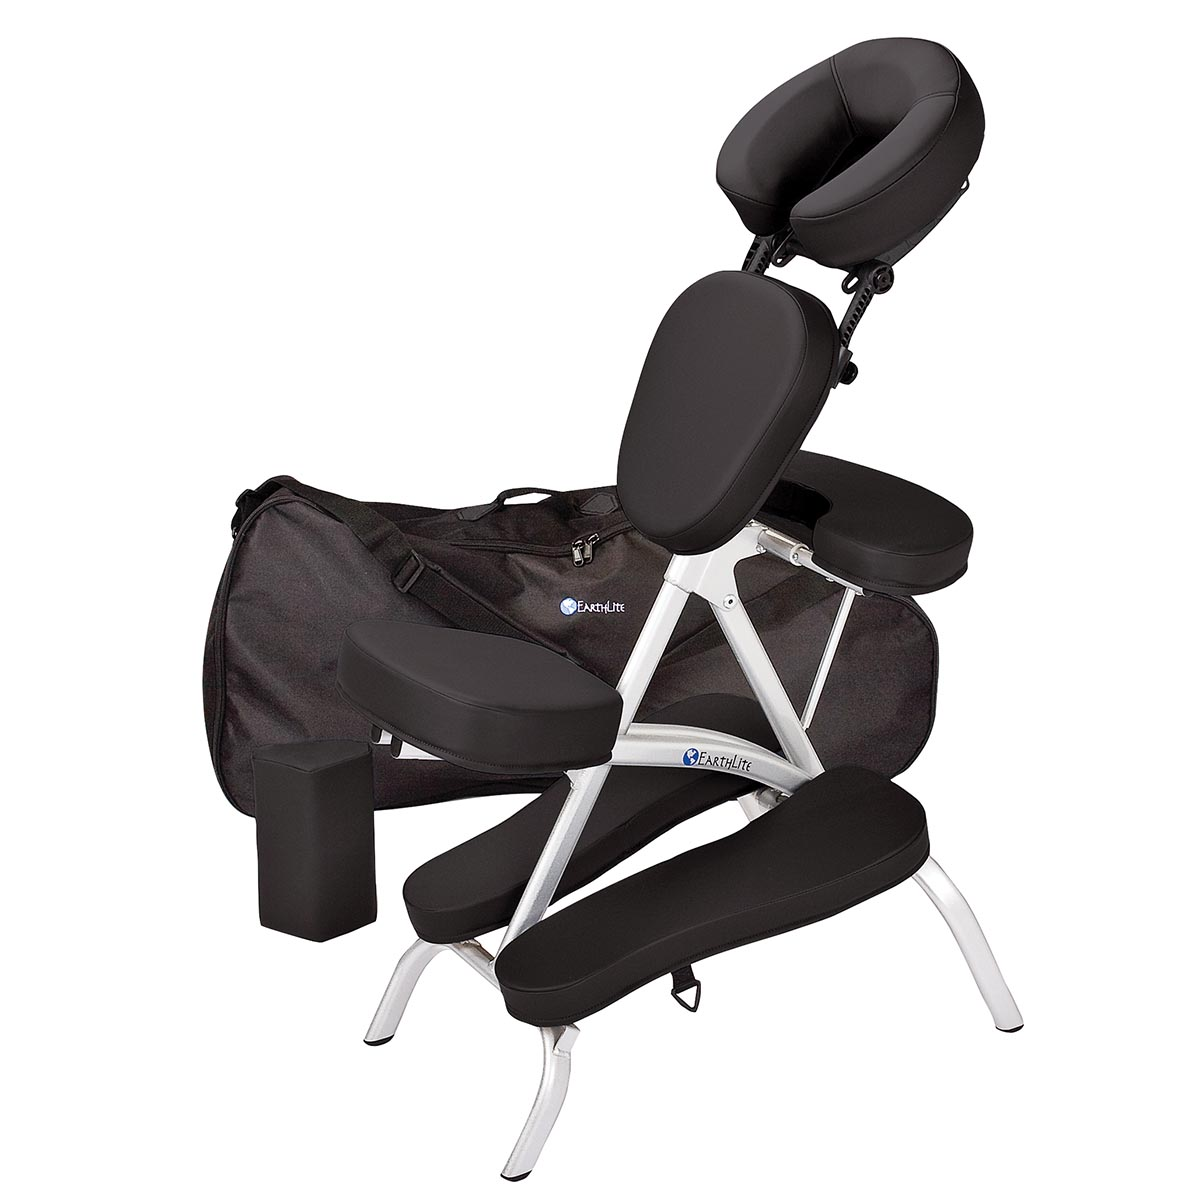 Chair Massage Earthlite Vortex Massage Chair Massage Chairs